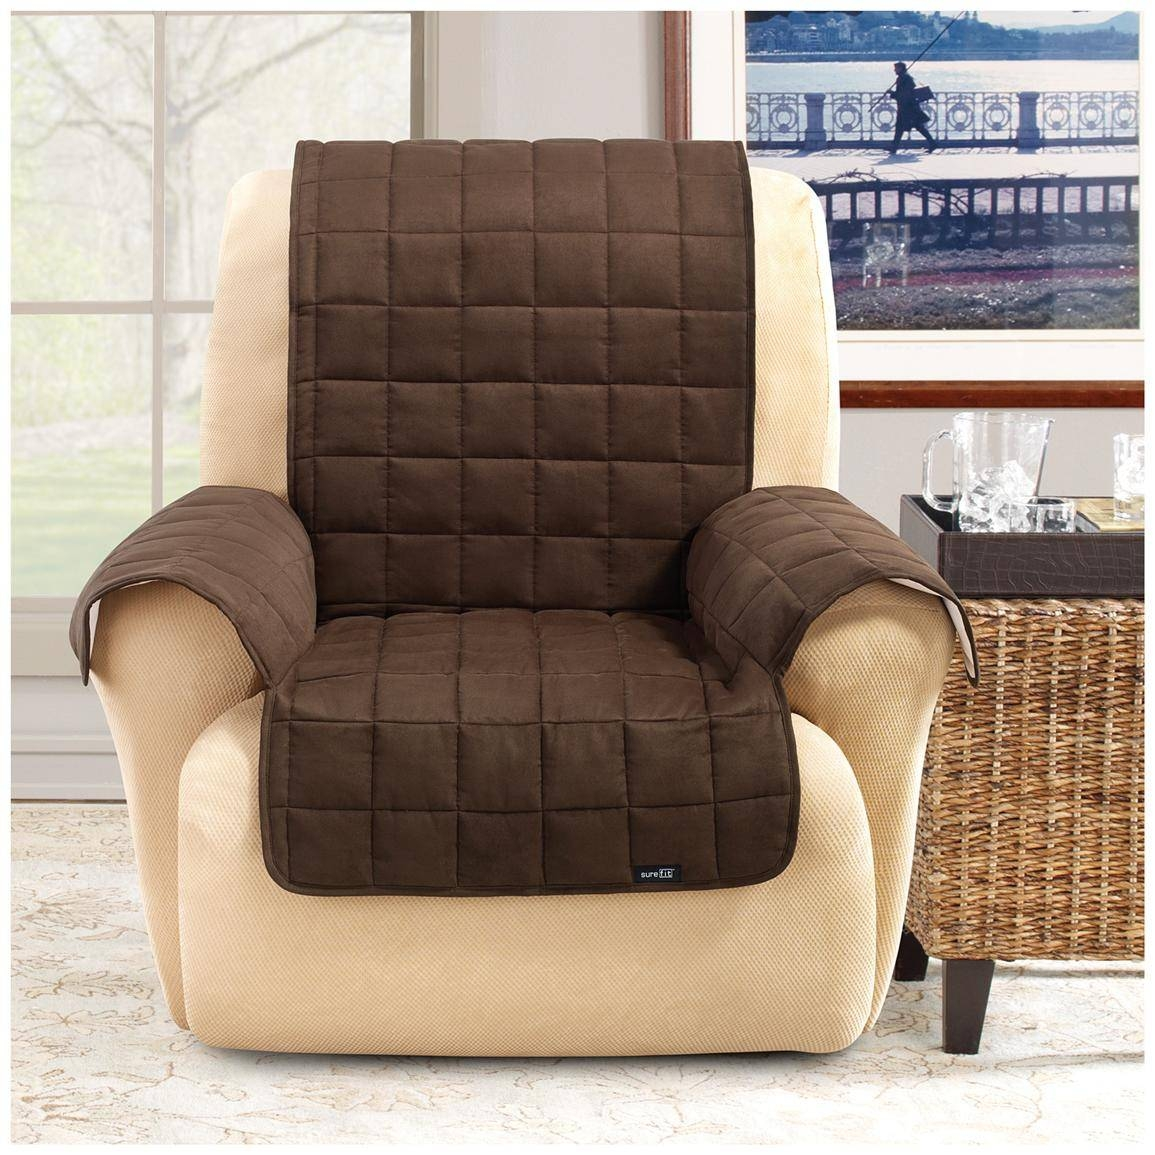 Sure Fit® Waterproof Quilted Suede Wing Chair / Recliner Pet Cover Intended For Stretch Covers For Recliners (View 15 of 15)